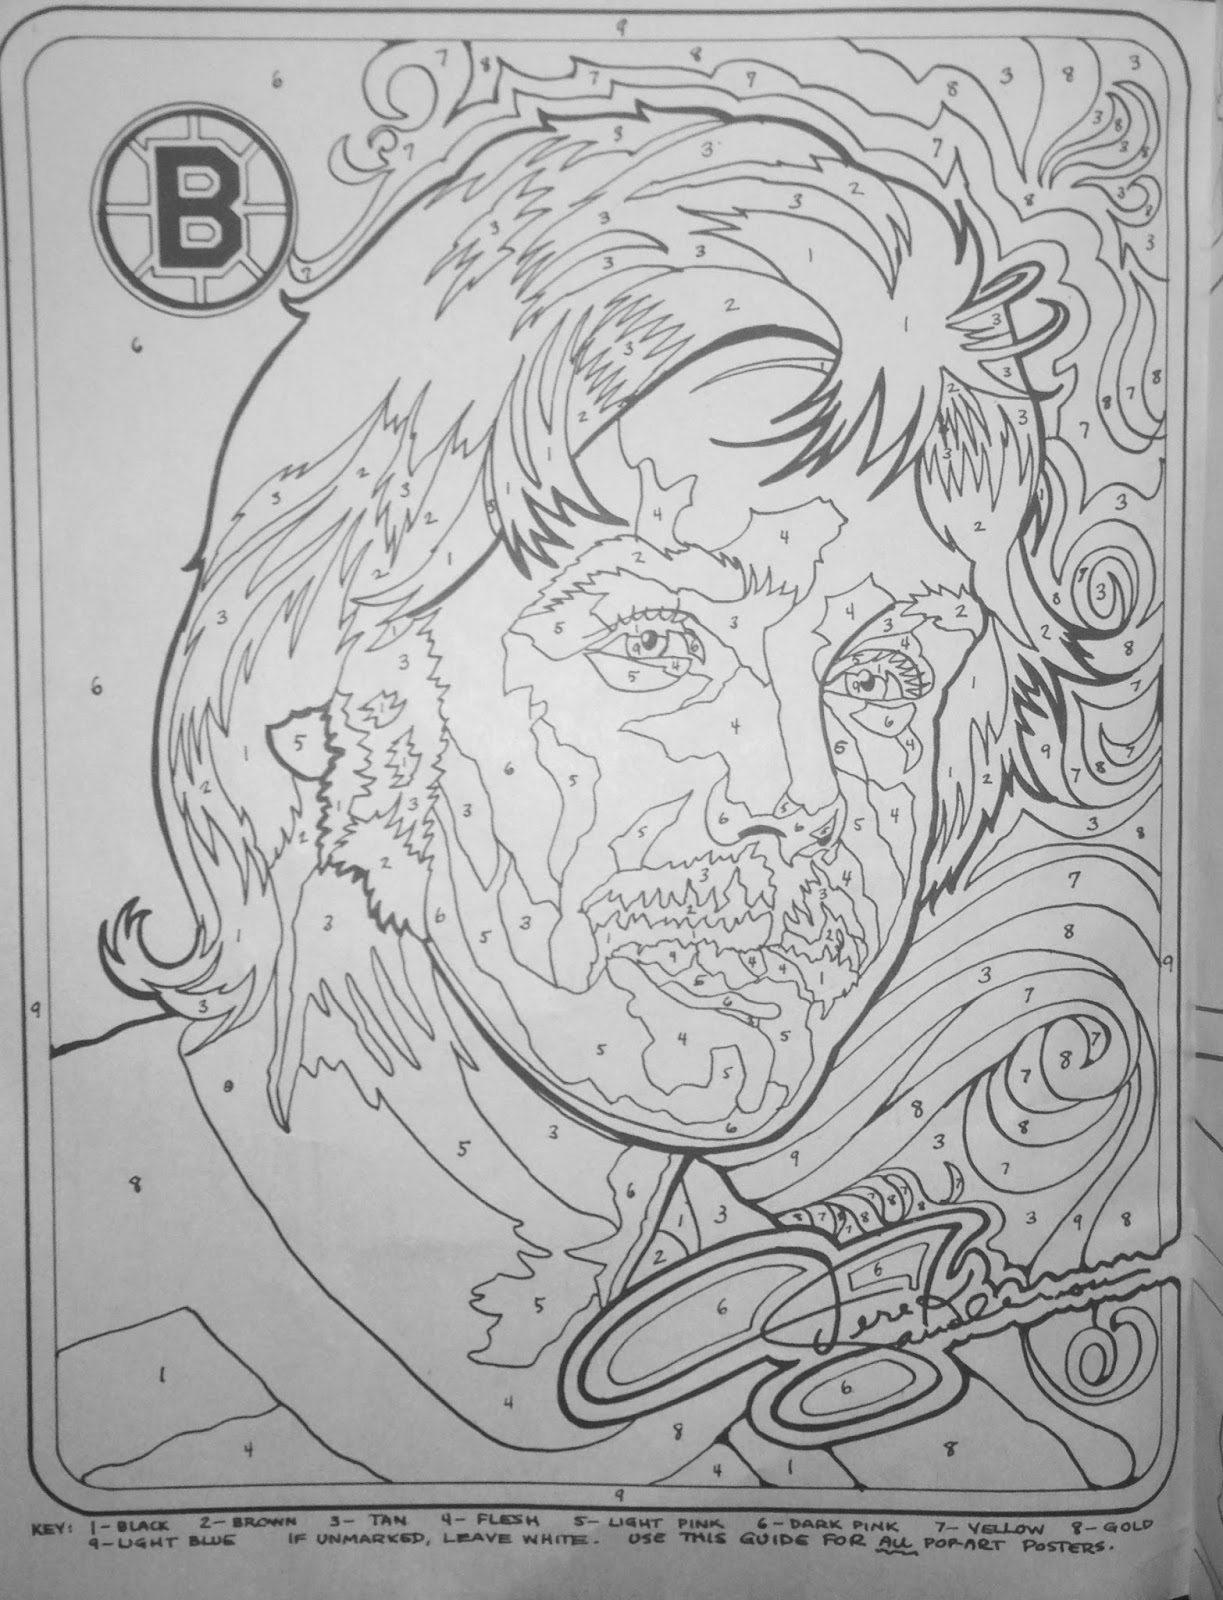 boston bruins coloring pictures bruins drawing at getdrawings free download pictures bruins boston coloring